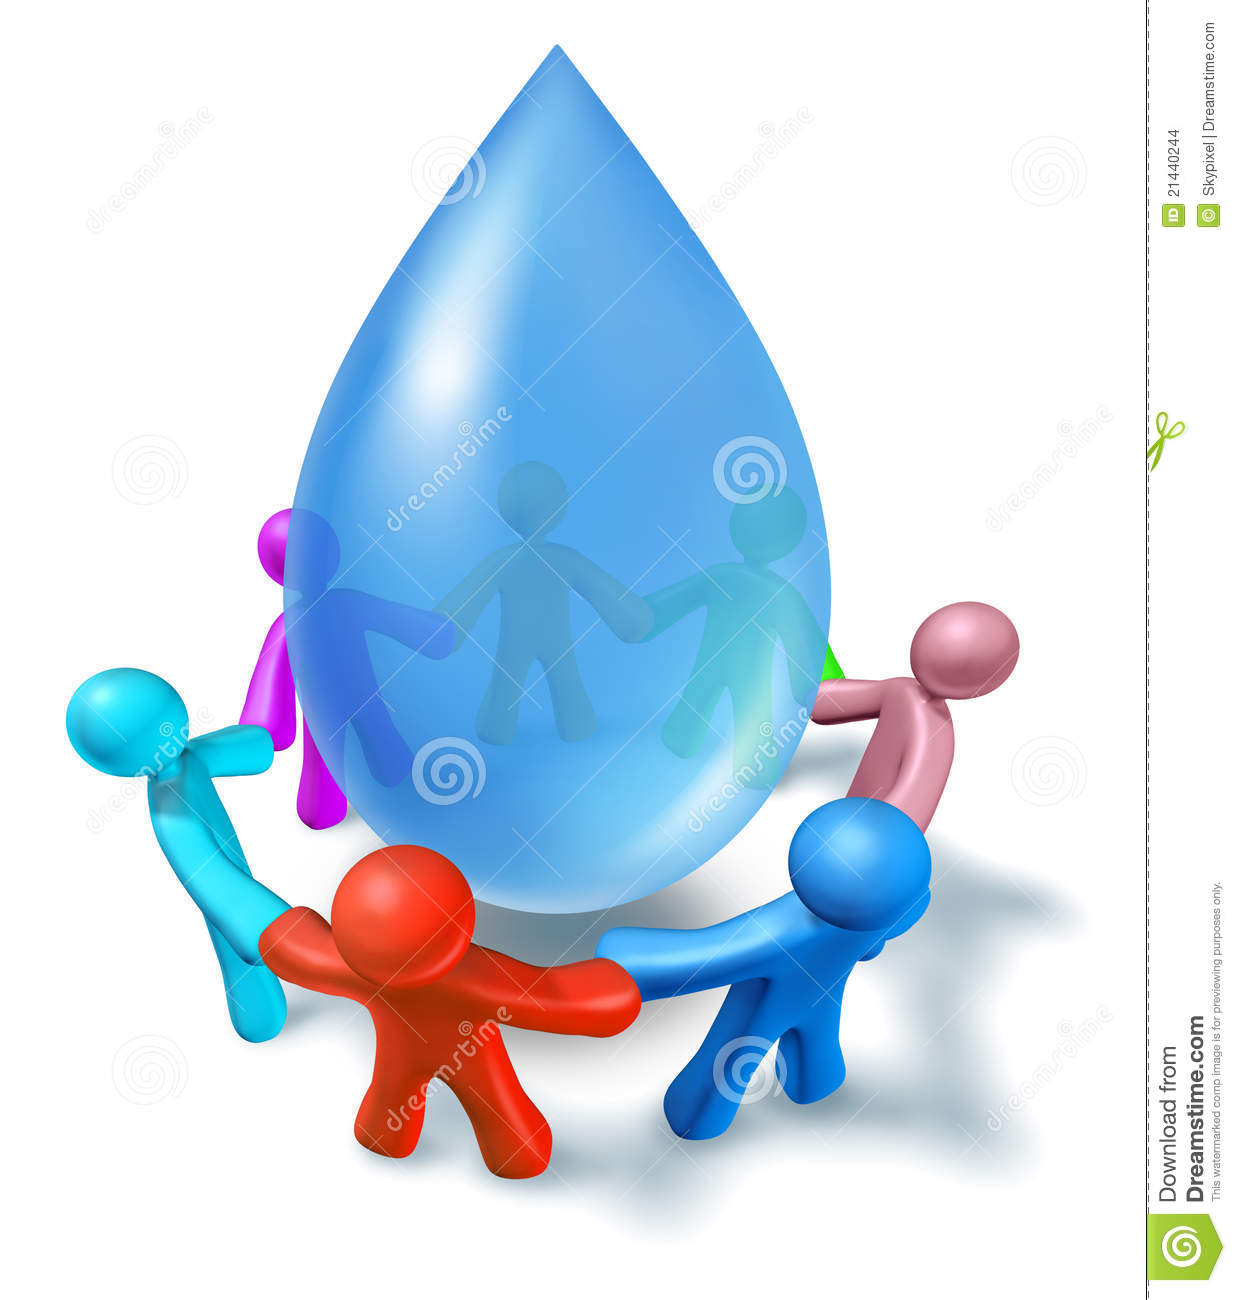 Clean drinking water symbol stock illustration image for Potable water